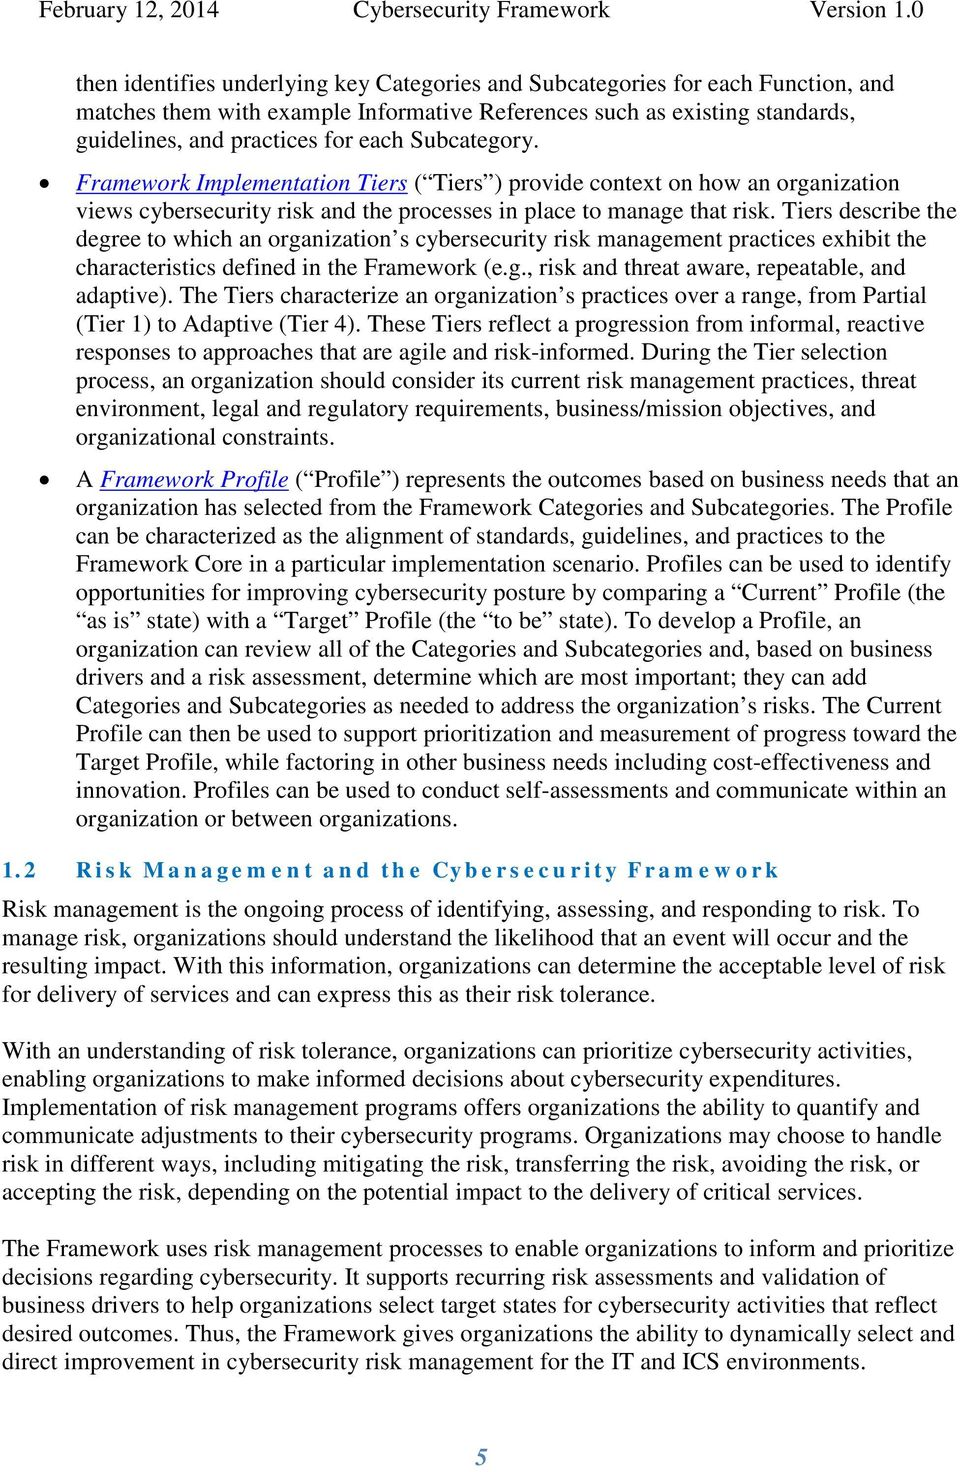 Tiers describe the degree to which an organization s cybersecurity risk management practices exhibit the characteristics defined in the Framework (e.g., risk and threat aware, repeatable, and adaptive).